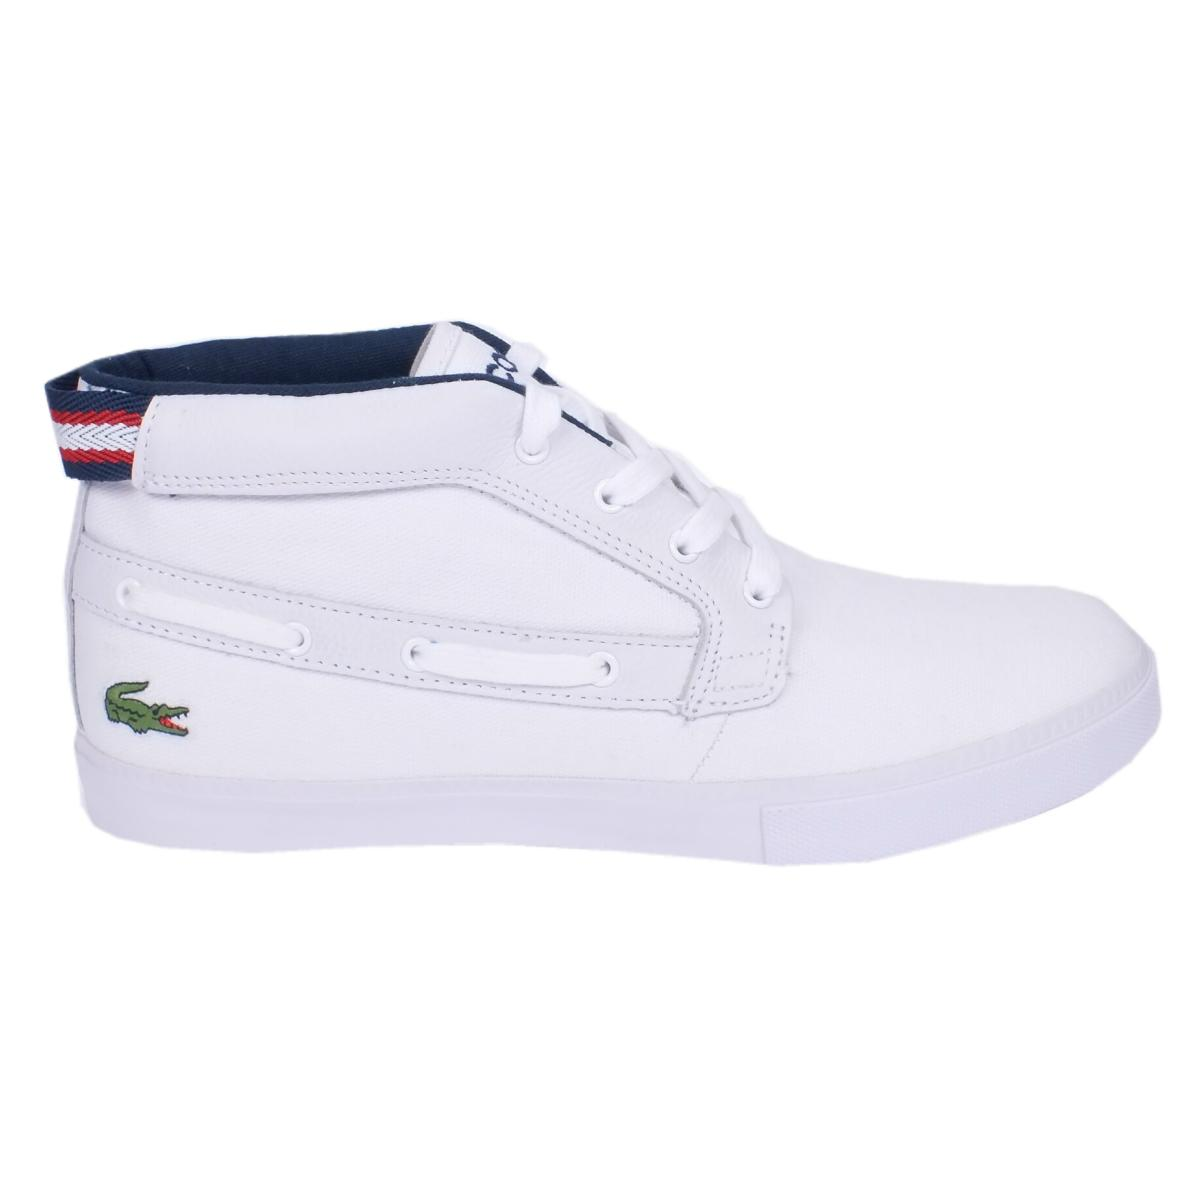 lacoste bowline usn schuhe turnschuhe sneaker high top. Black Bedroom Furniture Sets. Home Design Ideas